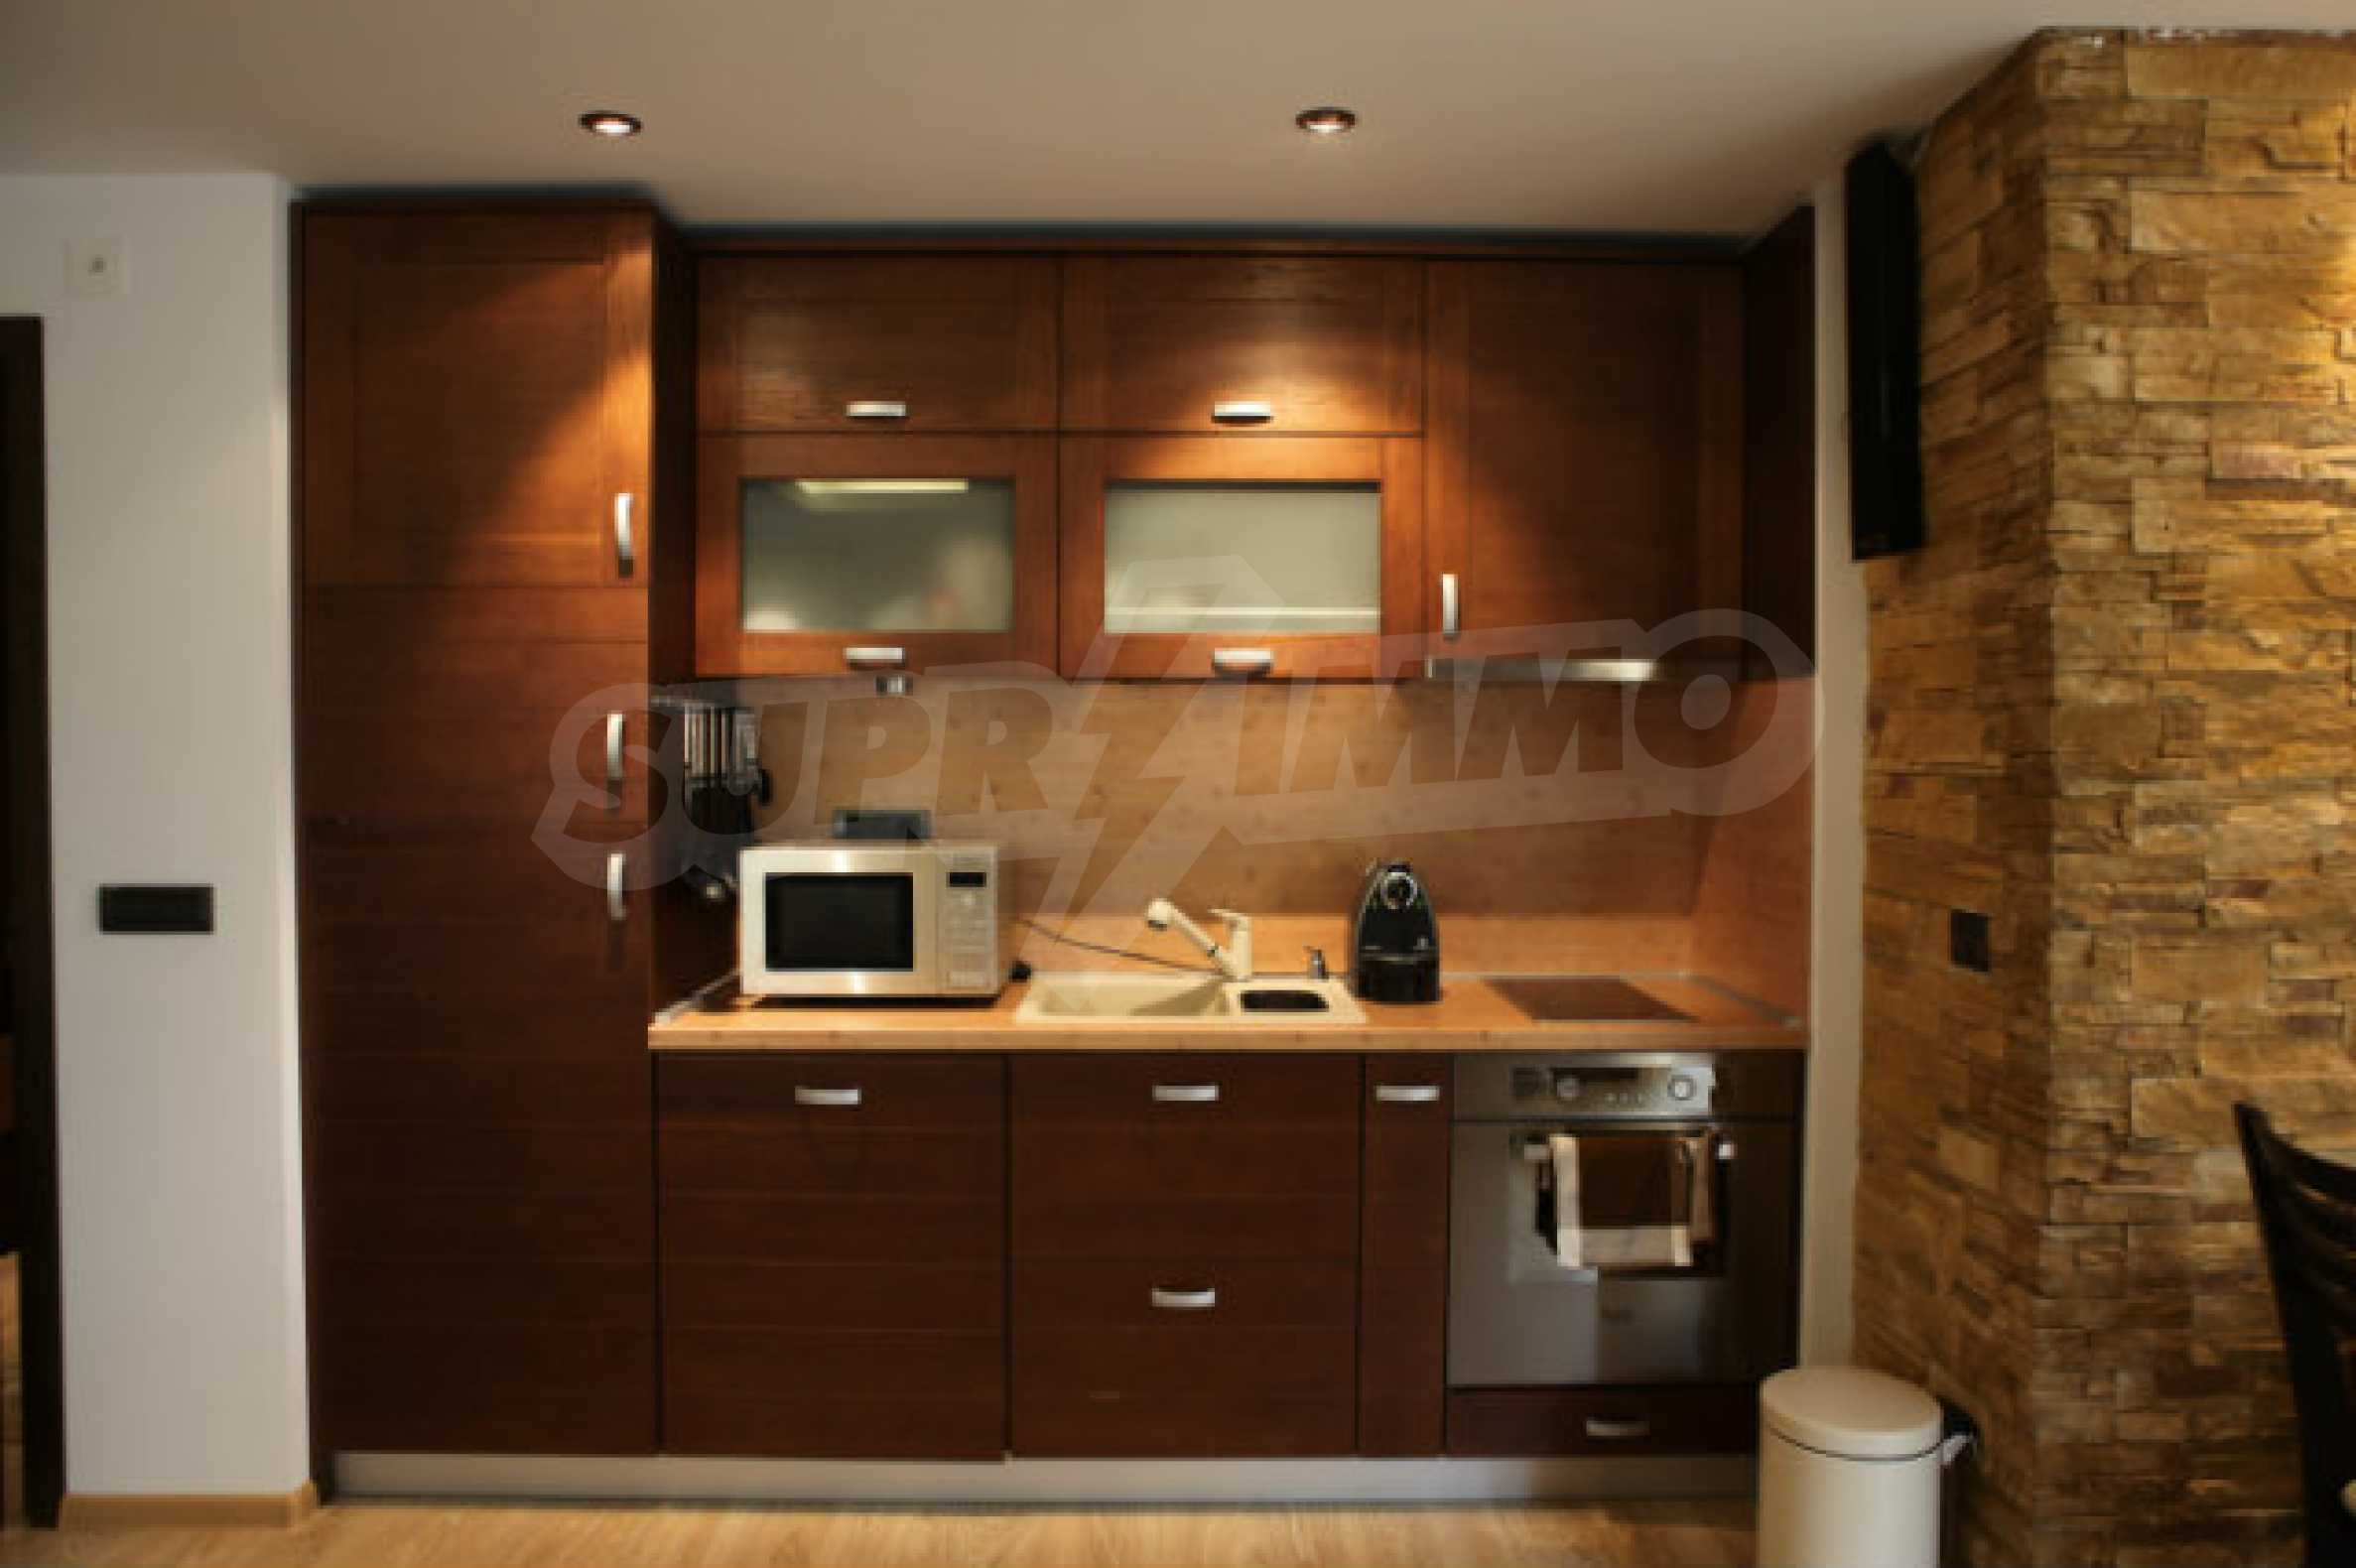 Stylish one-bedroom apartment in Central VIP Residence 1